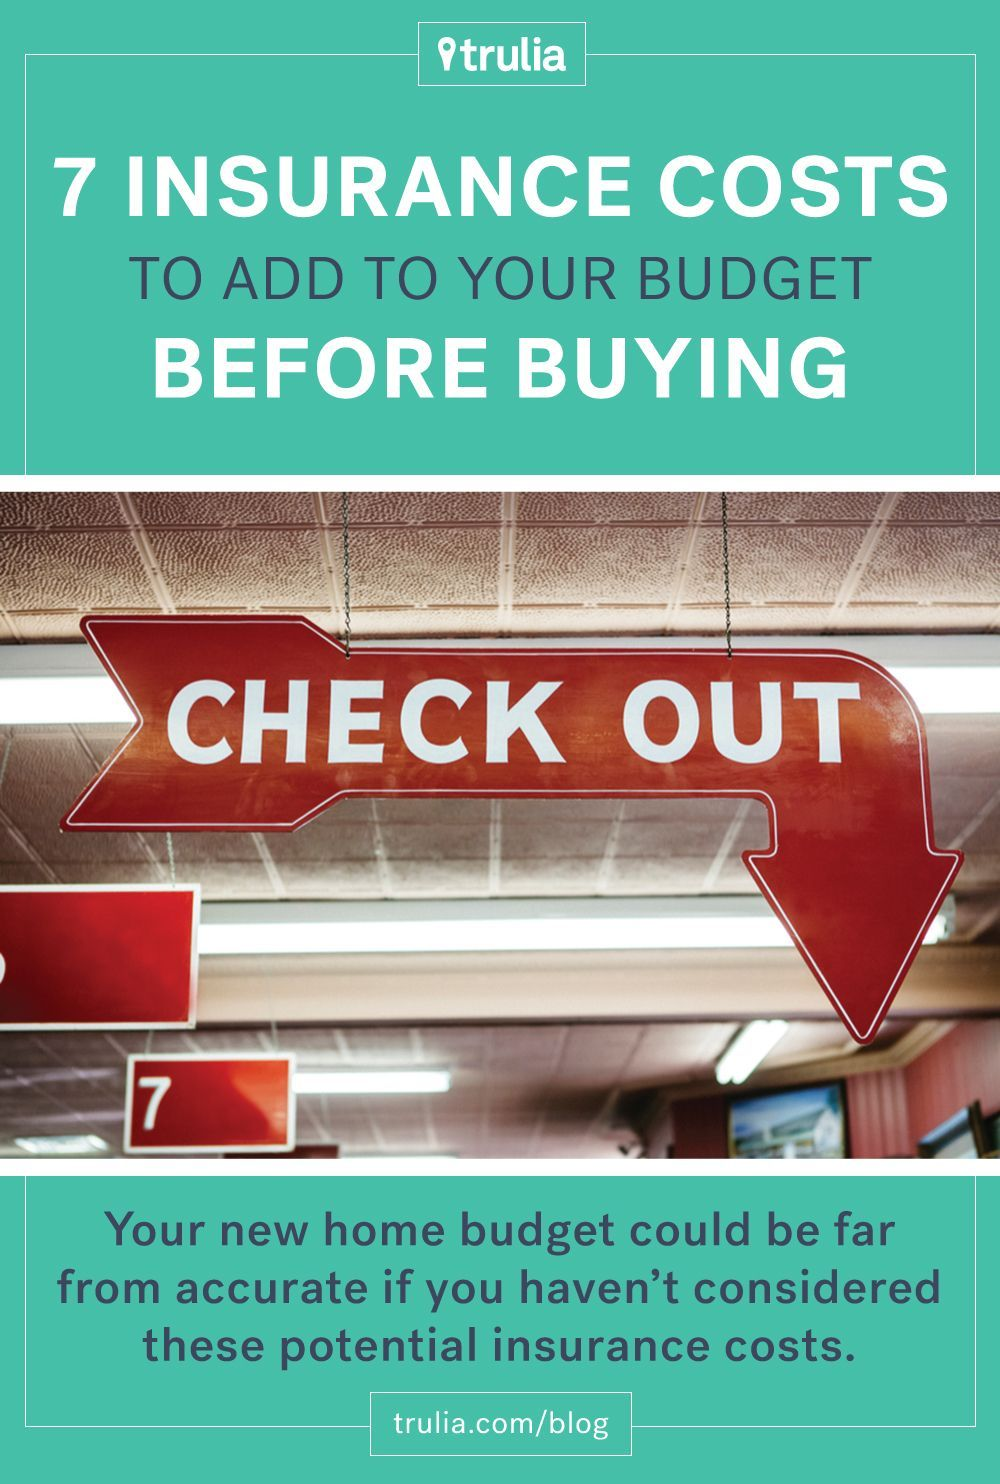 Add these 7 insurance costs to your budget before buying